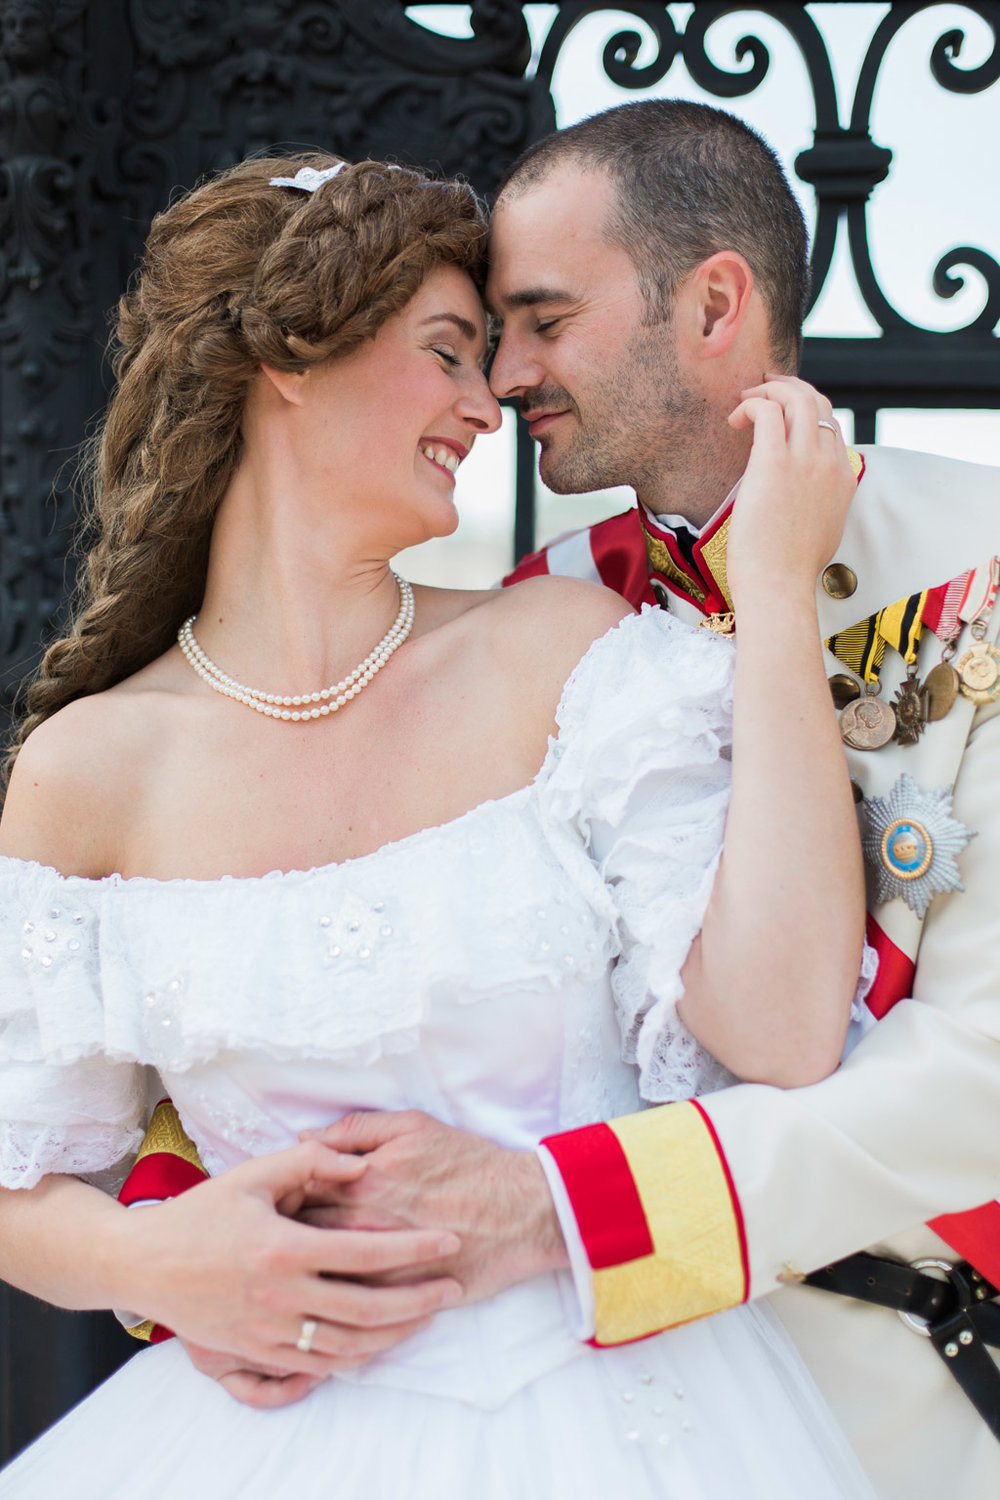 Royal wedding anniversary shooting themed Sissi and Franz at Hotel Imperial and Schloss Belvedere in Vienna, Austria